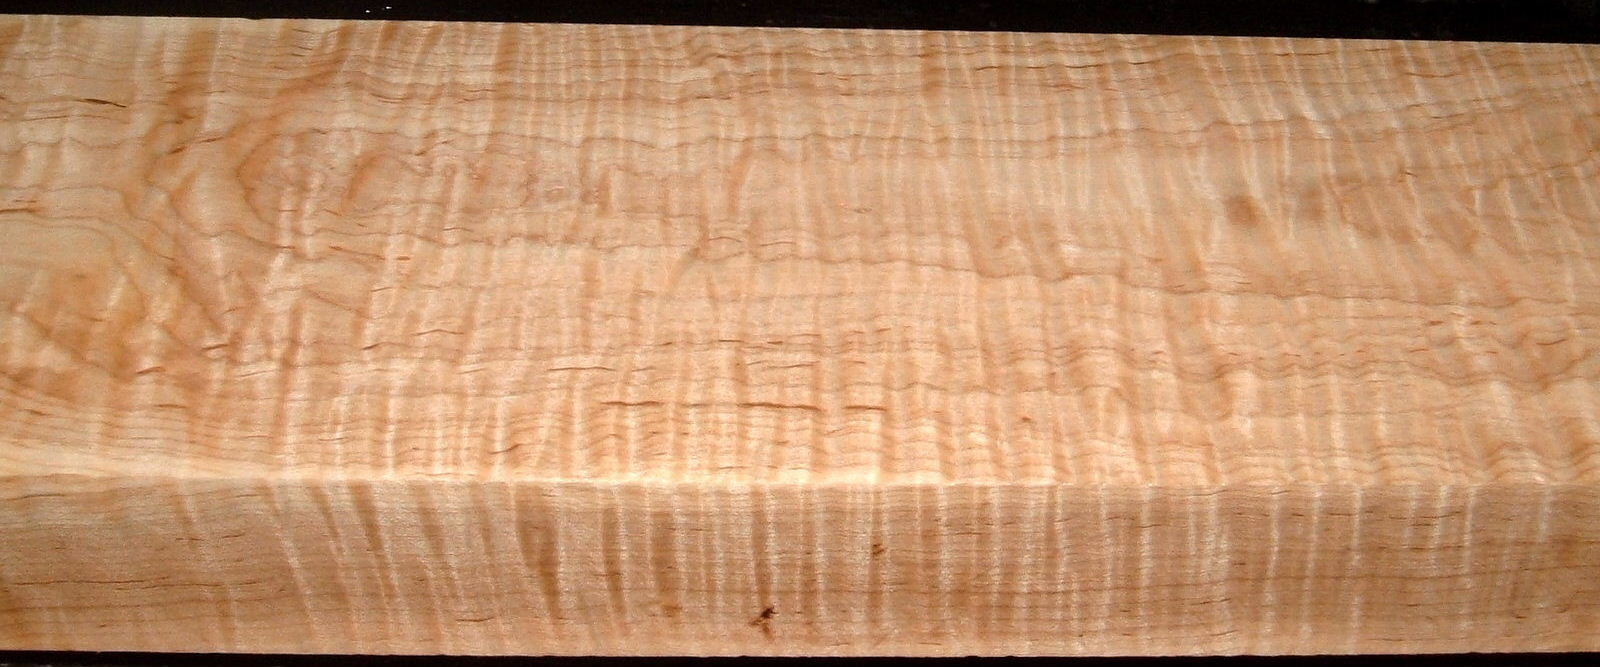 M2006-487, 2-1/8x6x39, 8/4 Curly Tiger Maple